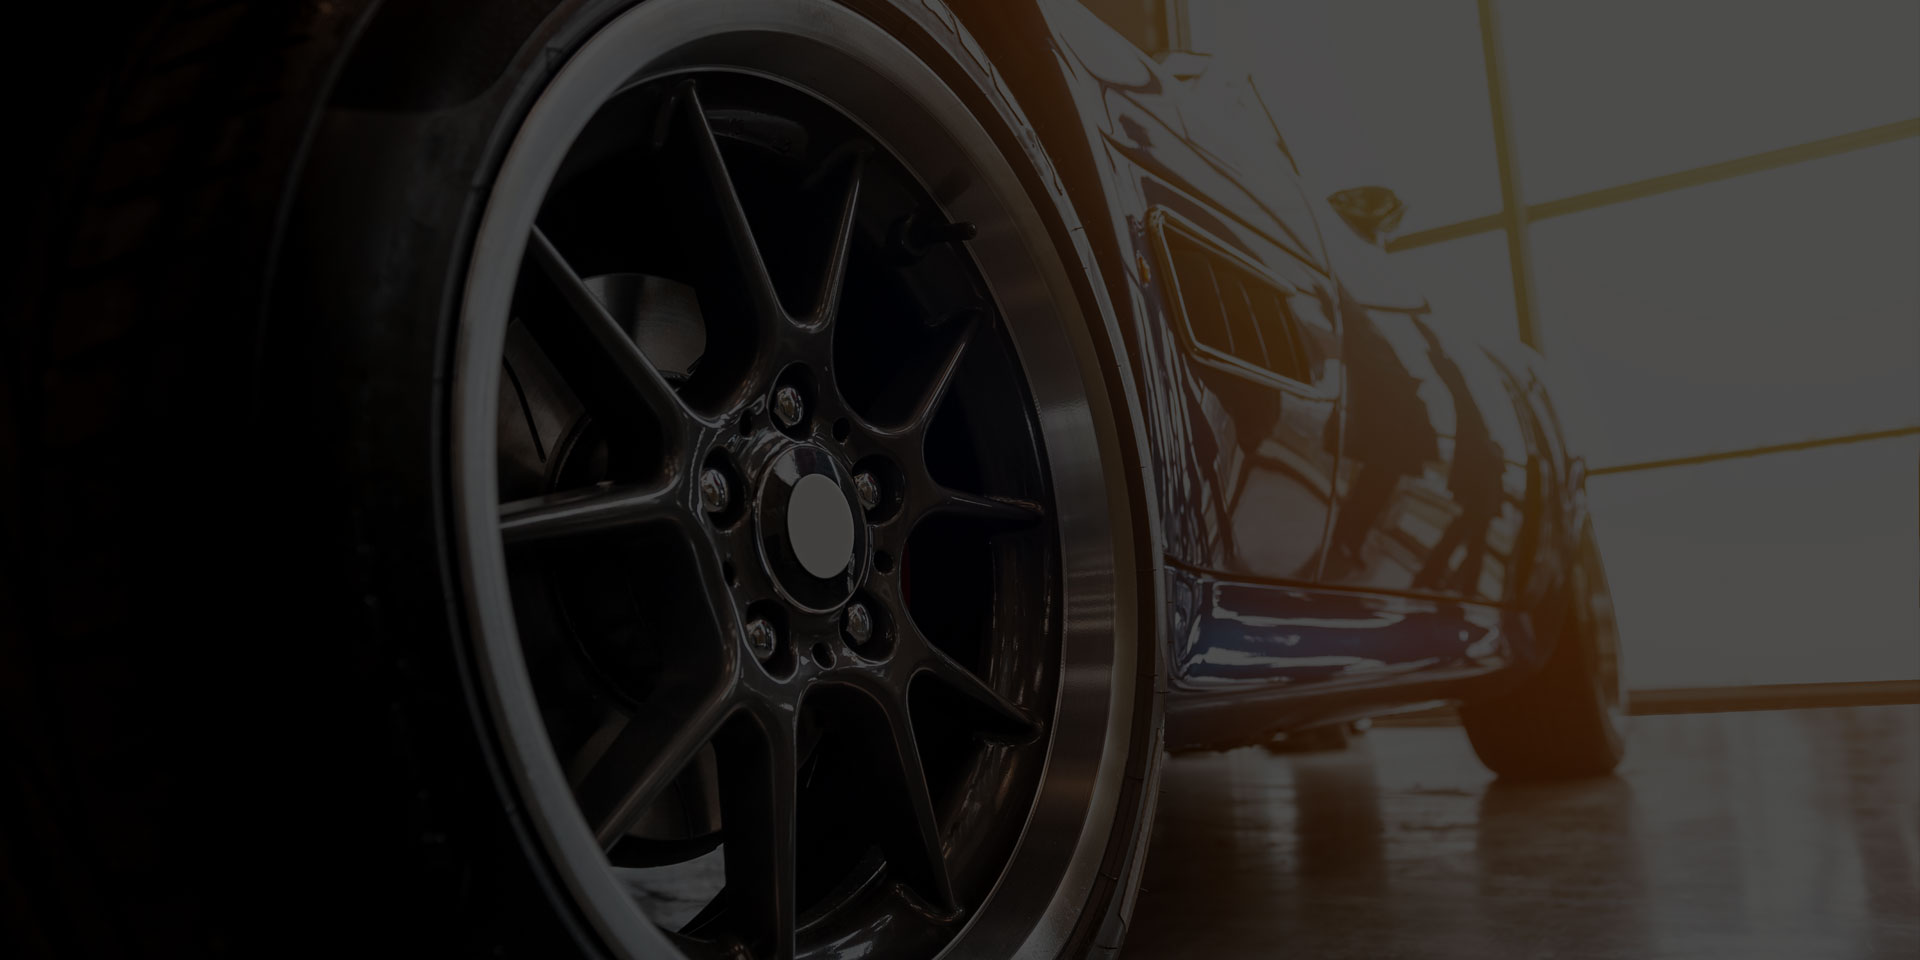 The performance of tires and wheels